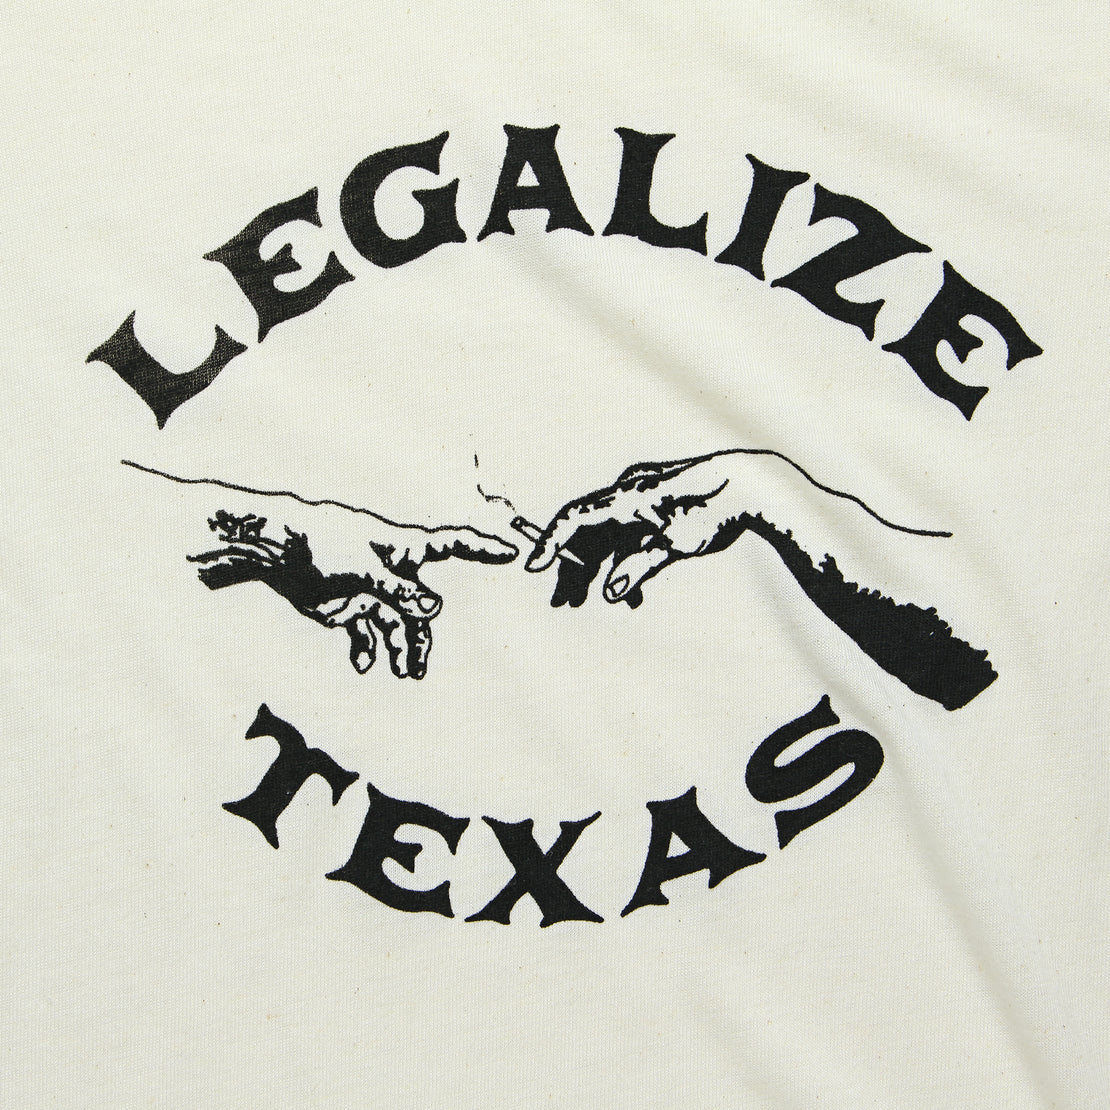 Graphic Tee - Legalize Texas - Alchemy Design - STAG Provisions - Tops - Graphic Tee